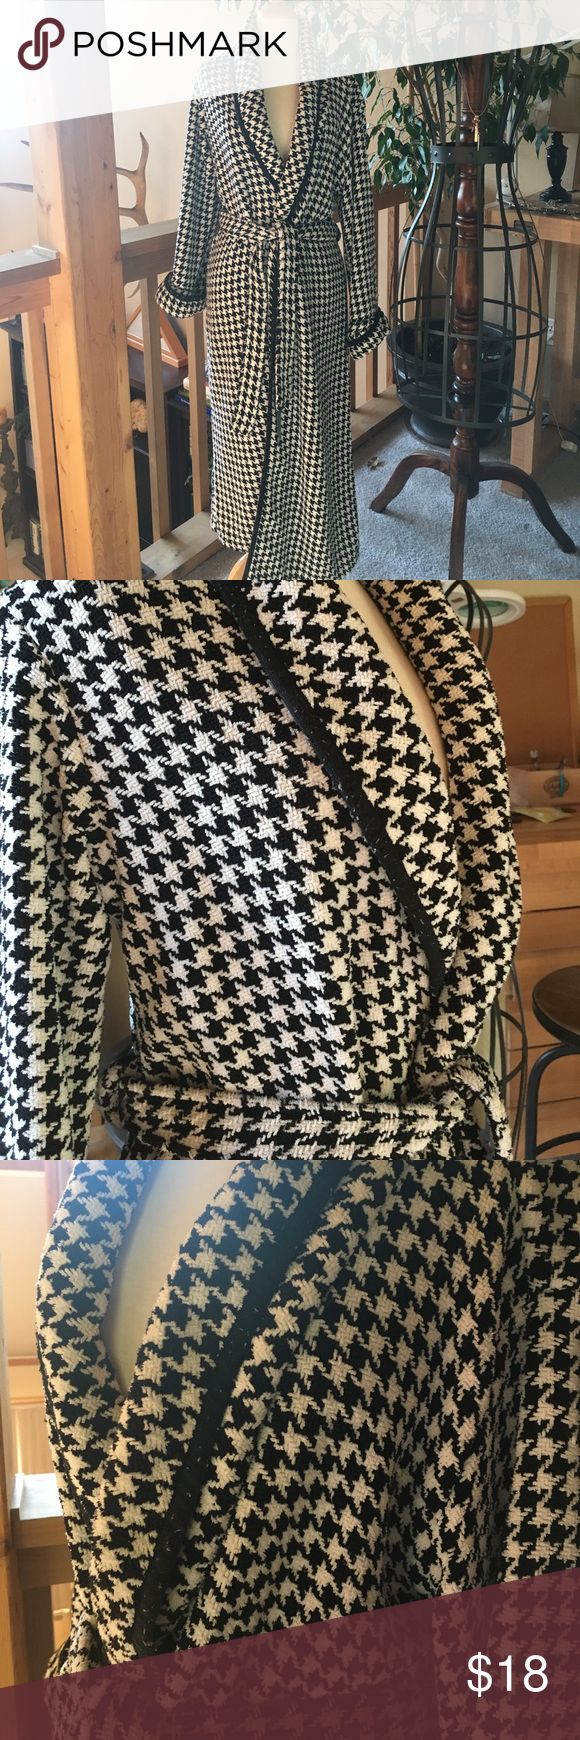 Houndstooth chenille robe. Extremely warm and comfy black-and-white houndstooth robe from Macy's.  Has pilling around the black accent trim, but it would be easy to remove with a sweater shaver. Machine washable. Charter Club Intimates Other